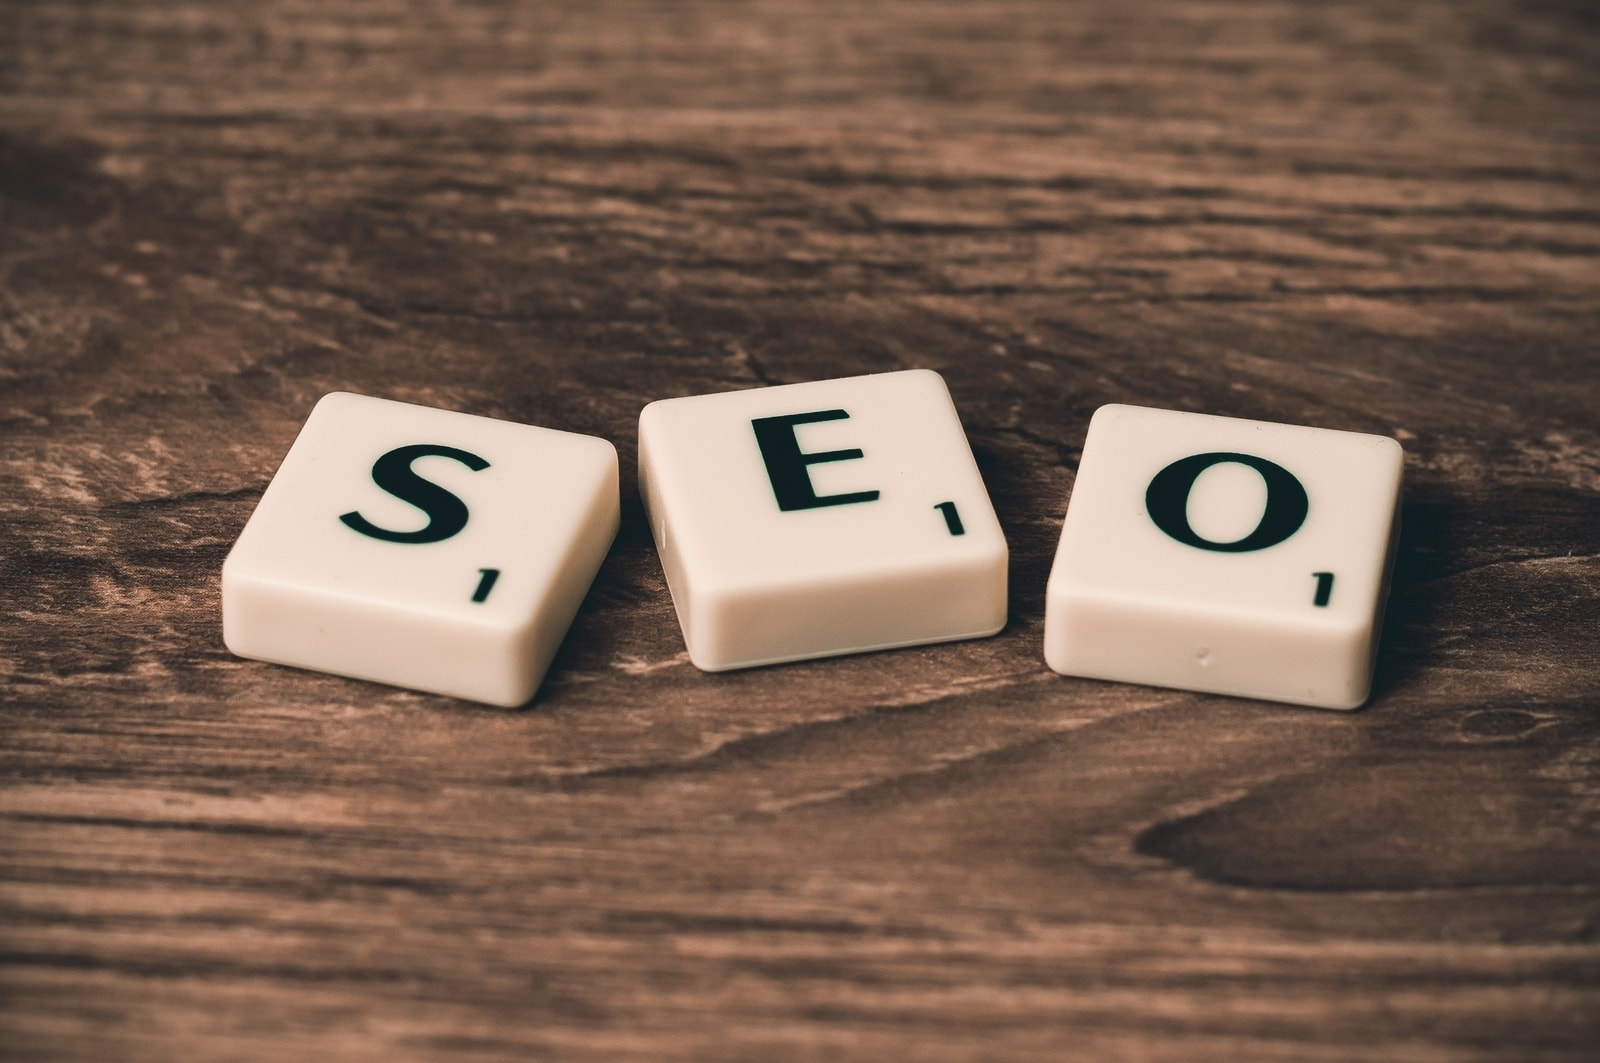 seo and marketing strategy